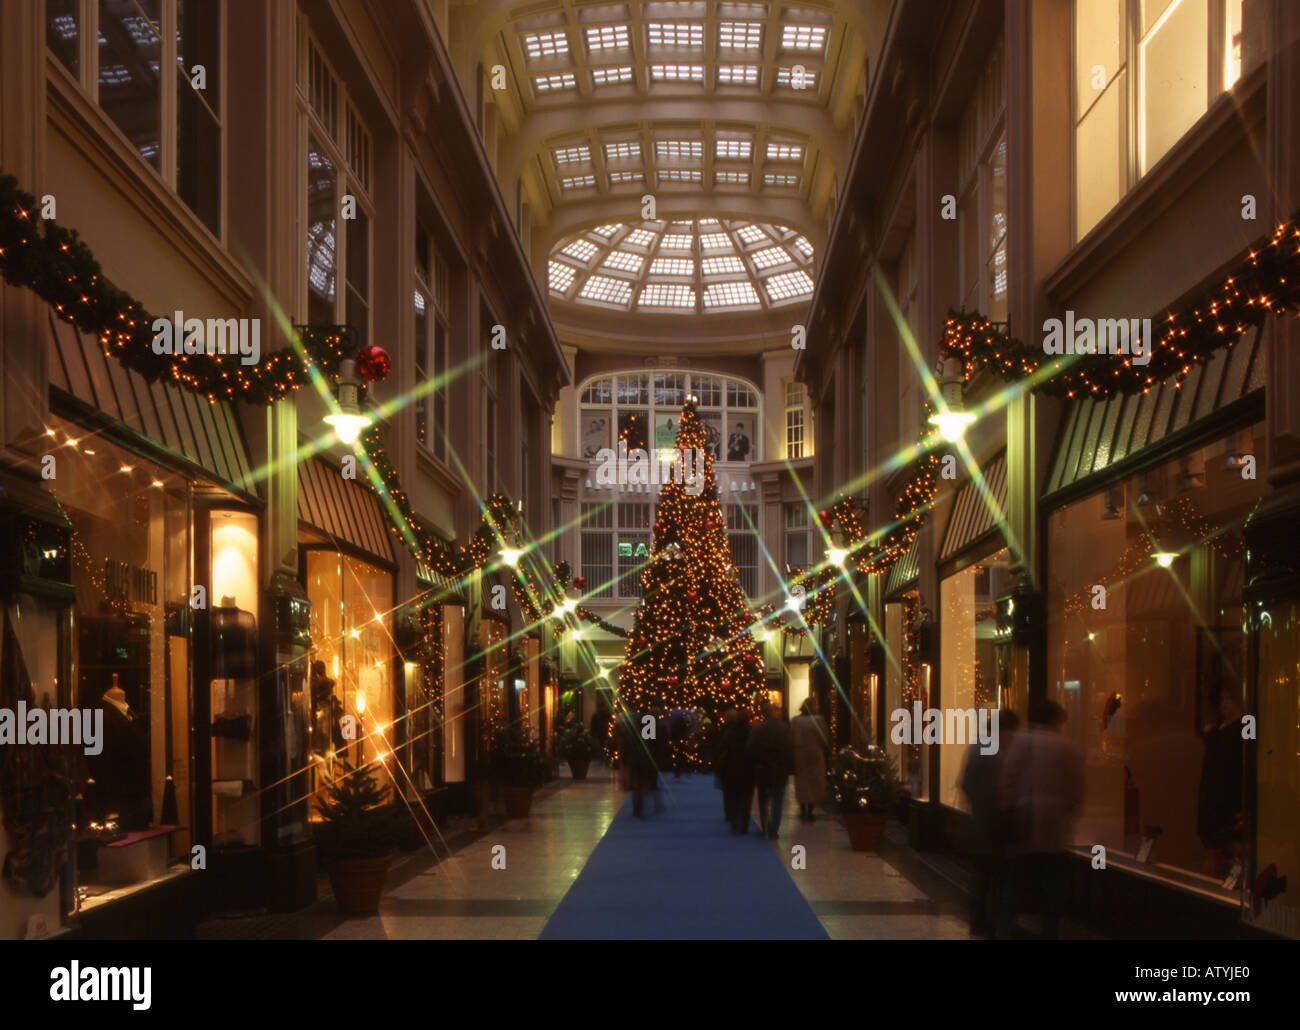 m dler passage leipzig weihnachten weihnachtsbaum. Black Bedroom Furniture Sets. Home Design Ideas